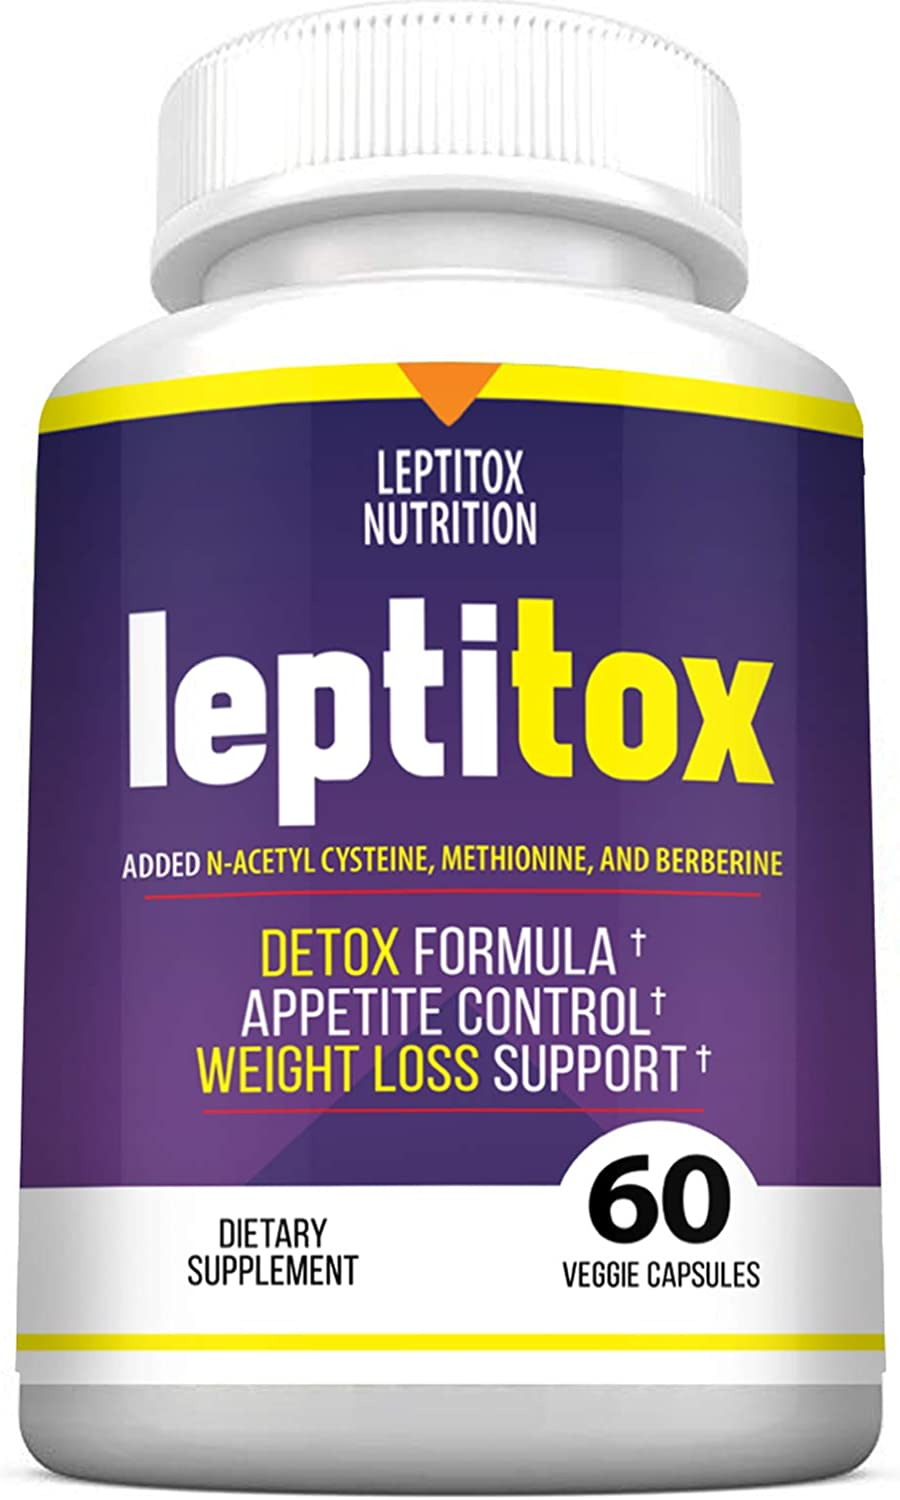 Leptitox Weight Loss Warranty Expiration